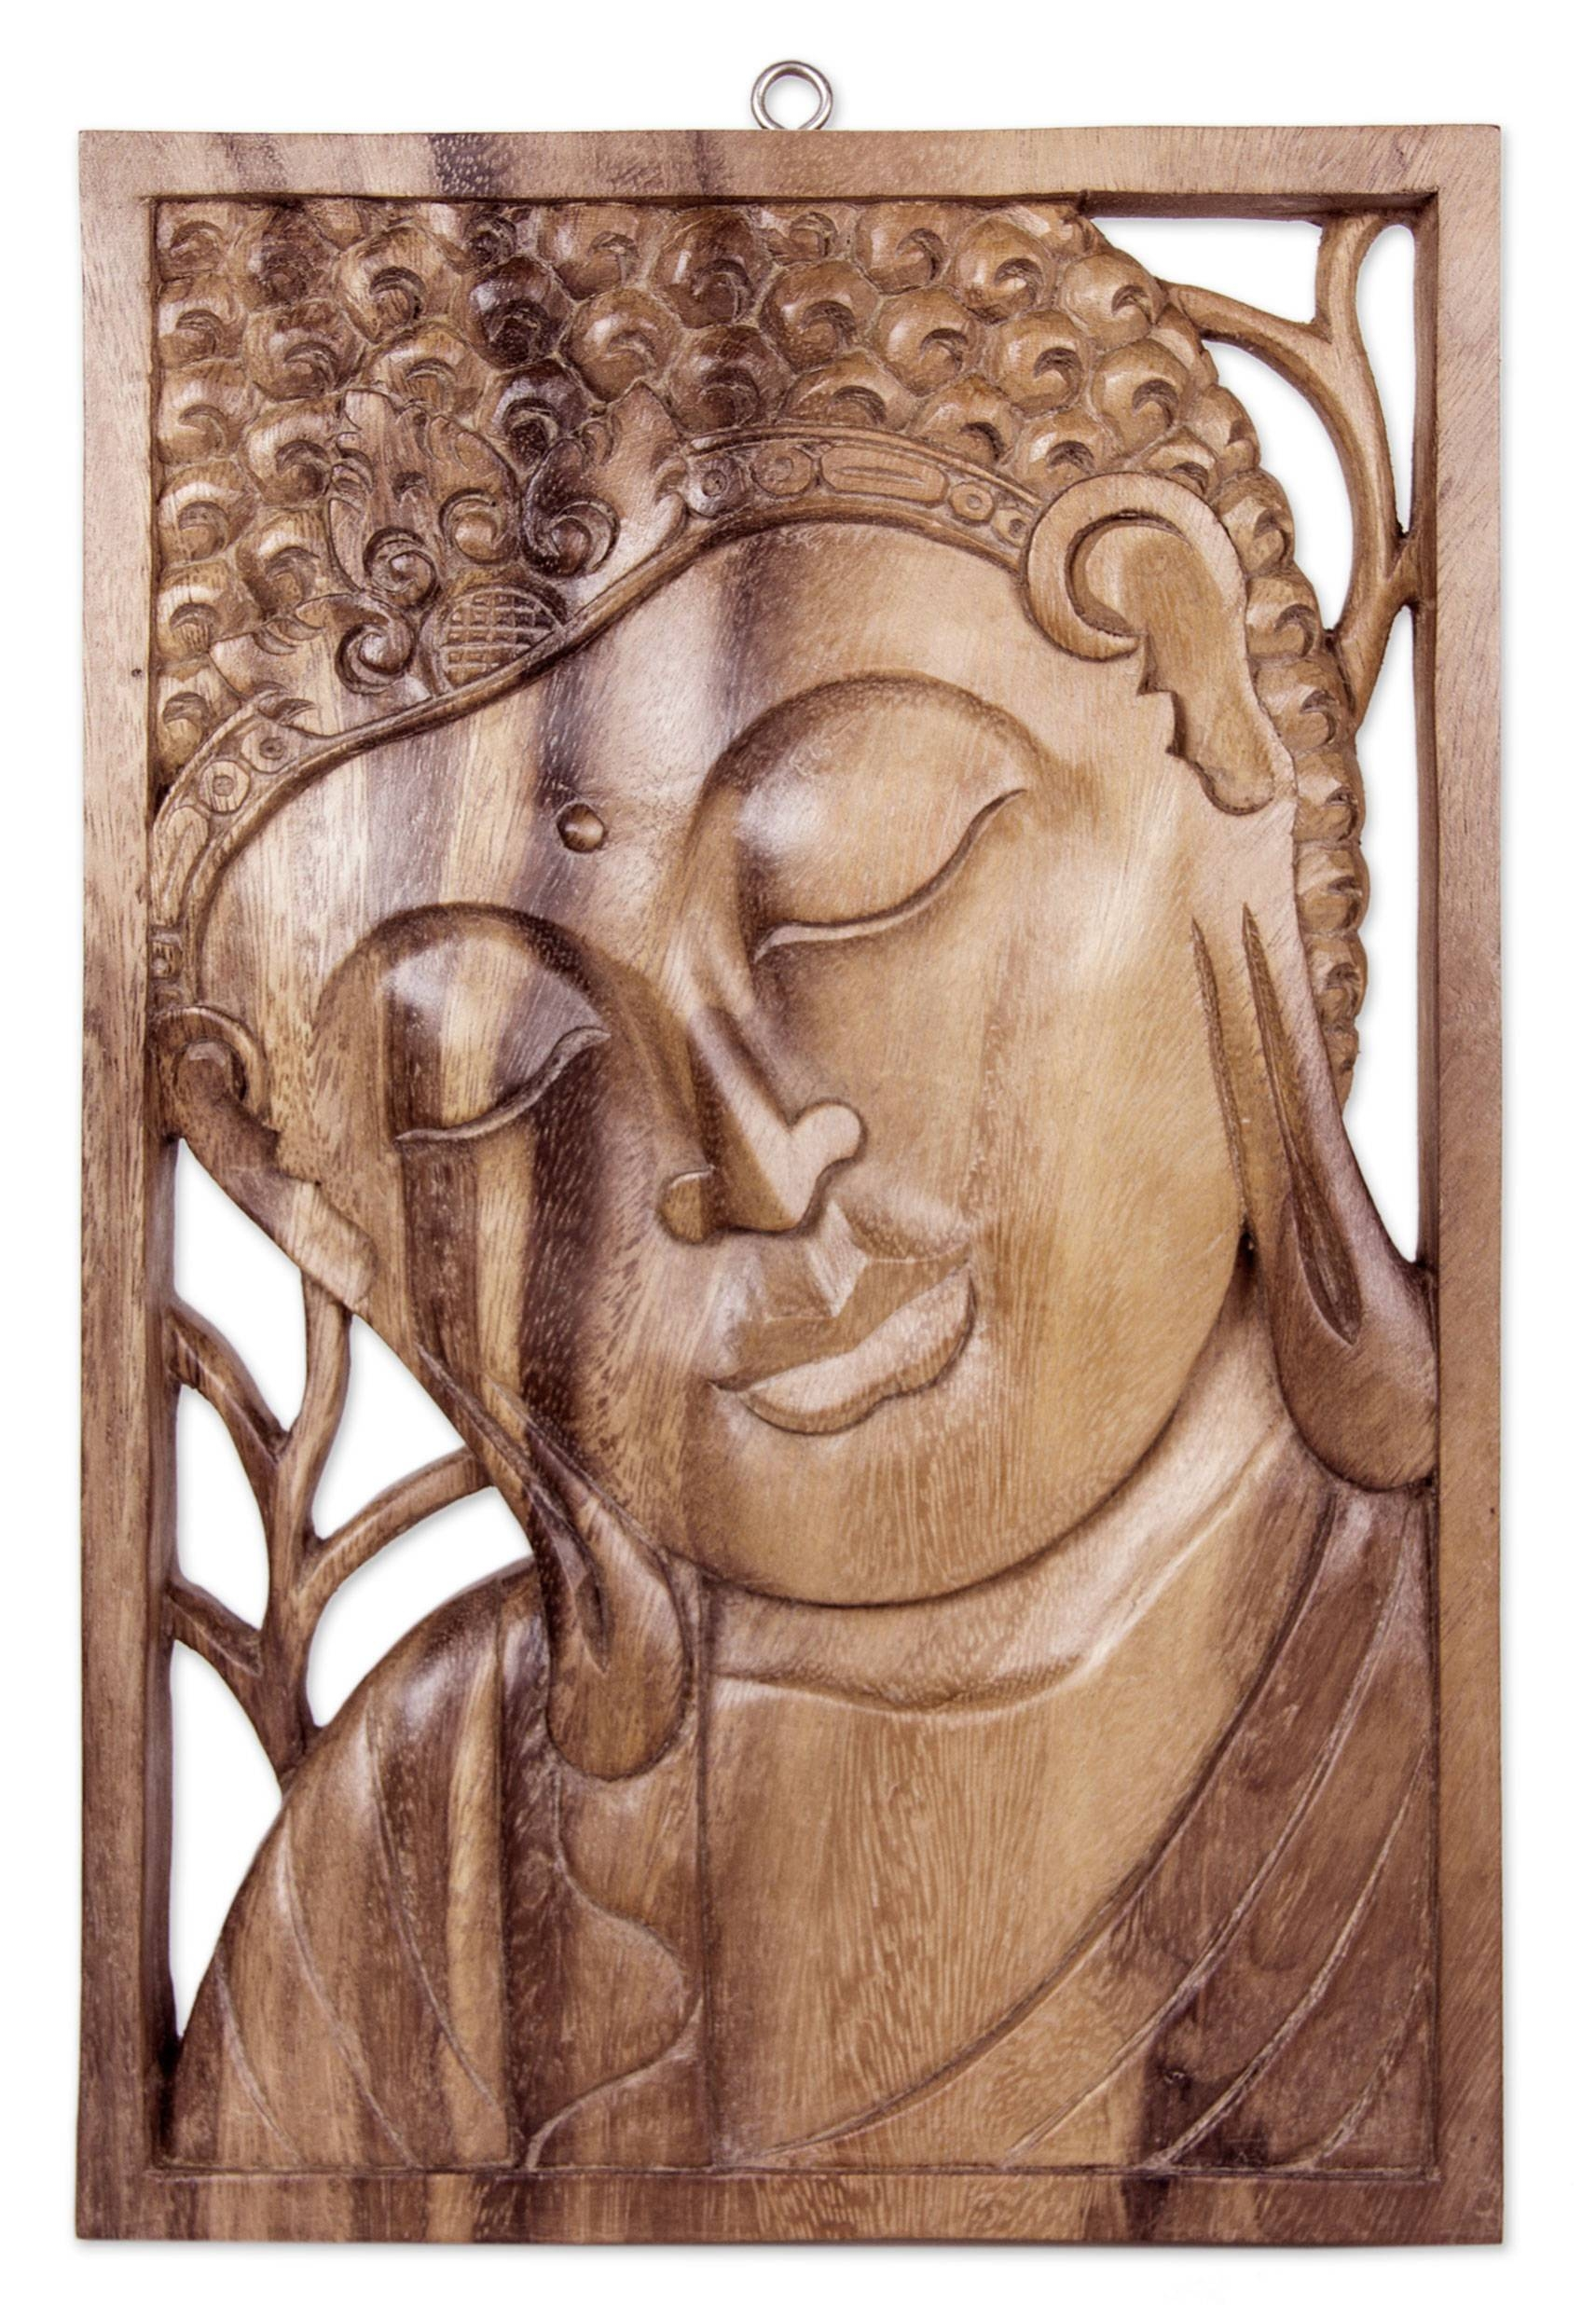 Zen Home Decor Ideas – Buddha Decor And Art | Novica Intended For 2017 Balinese Wall Art (View 12 of 30)